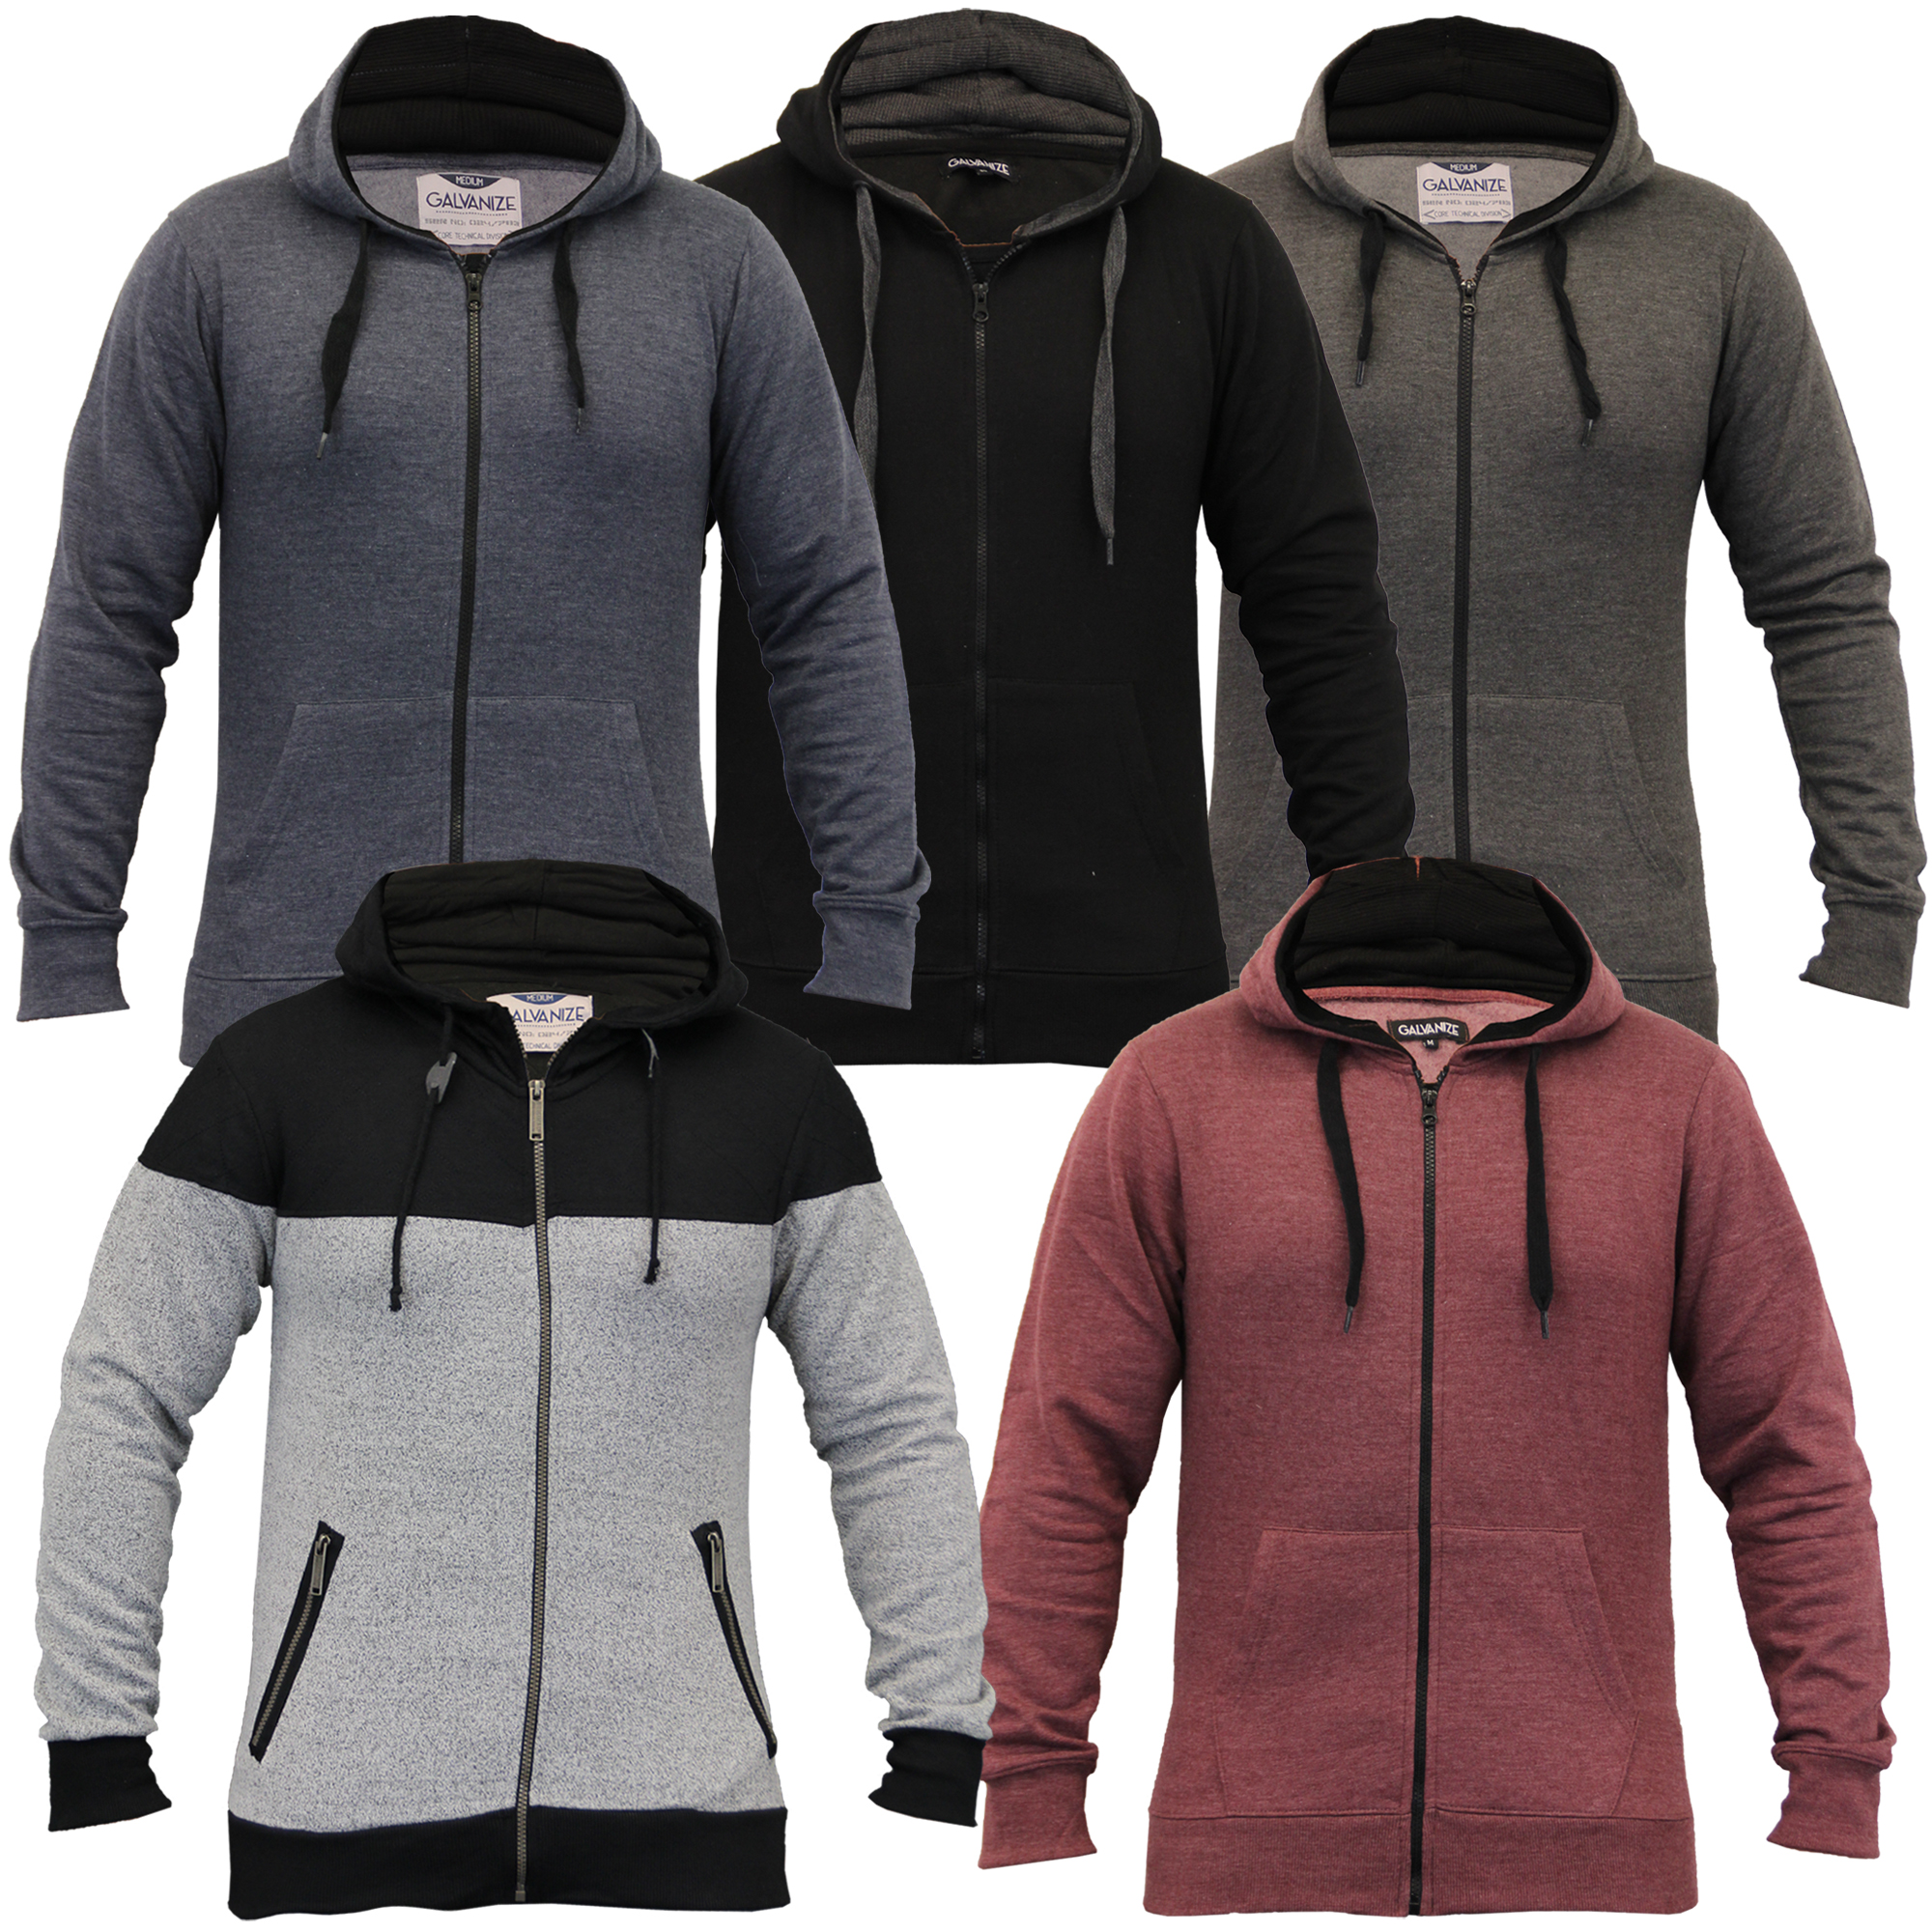 Mens Diamond Quilted Hooded Top Fleece Lined Sweatshirt By Galvanize